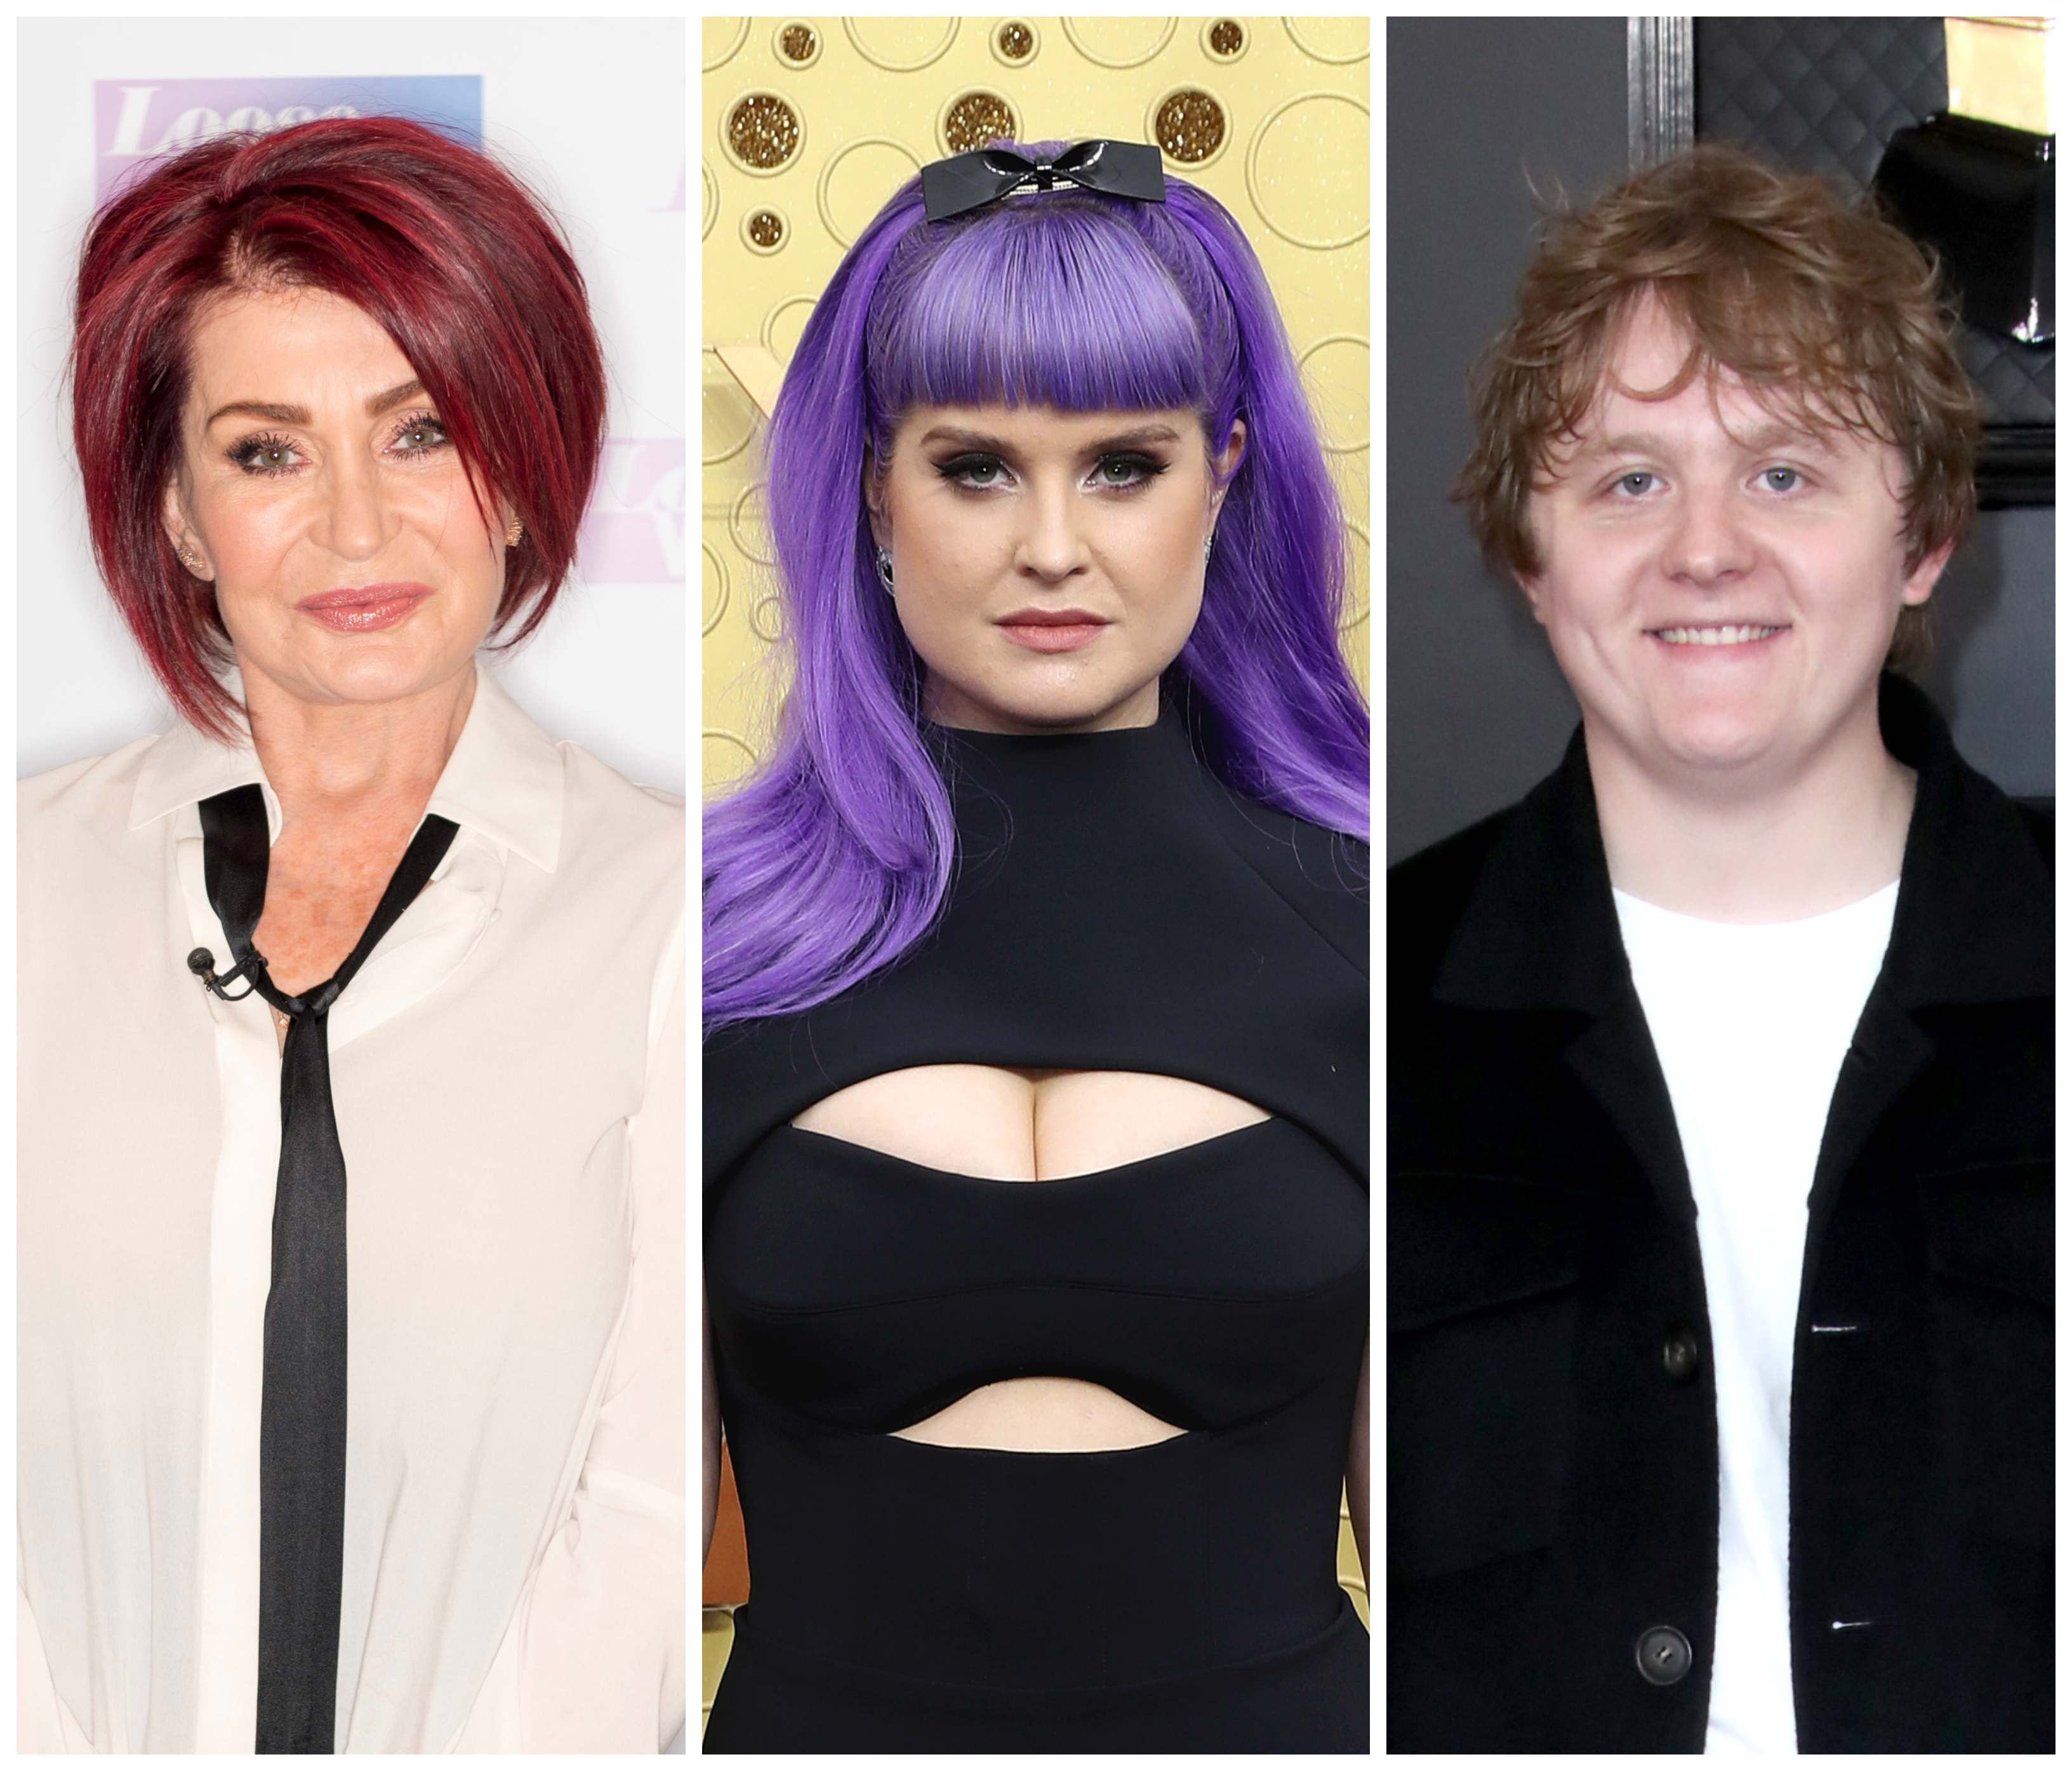 Sharon Osbourne Jokes Daughter Kelly, 35, Is 'in Love With' Lewis Capaldi, 23, at 2020 Grammys